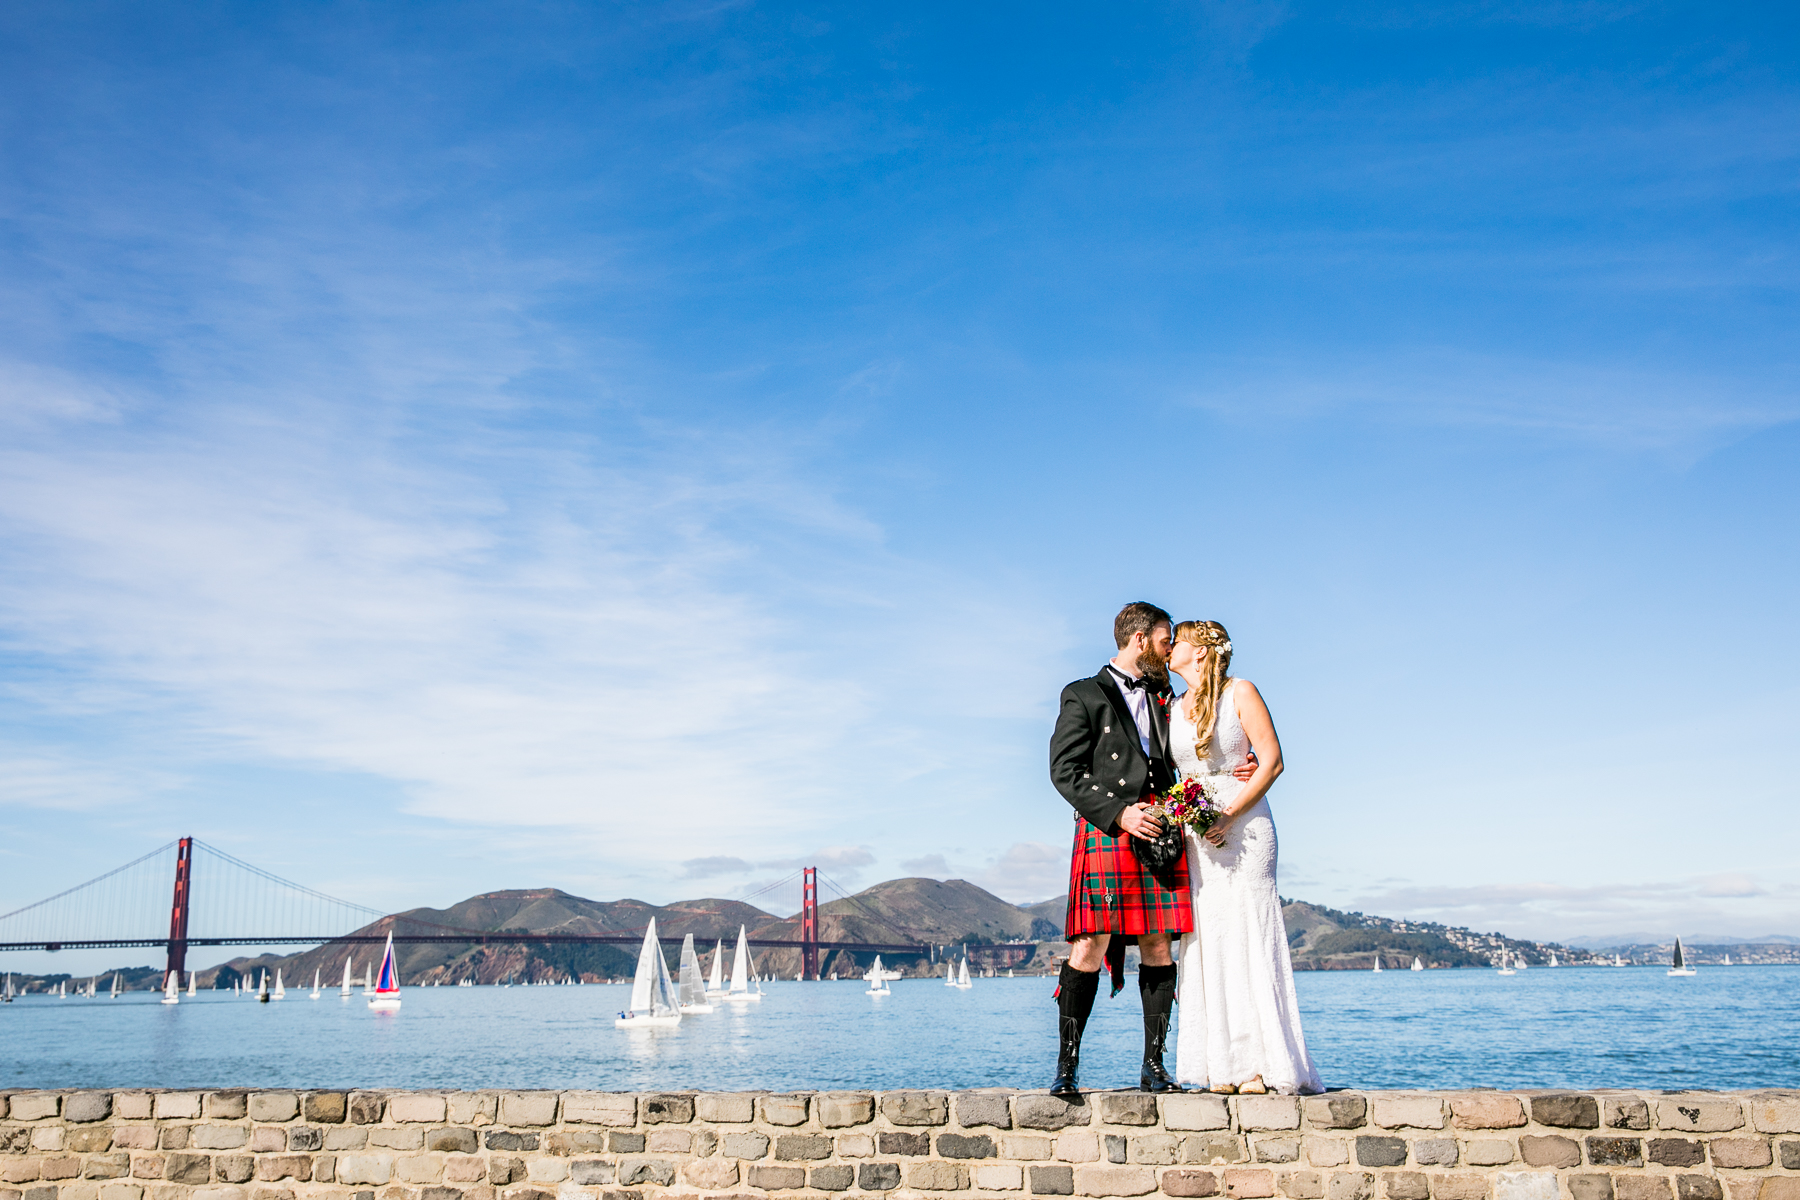 wide shot of golden gate bridge with bride and groom